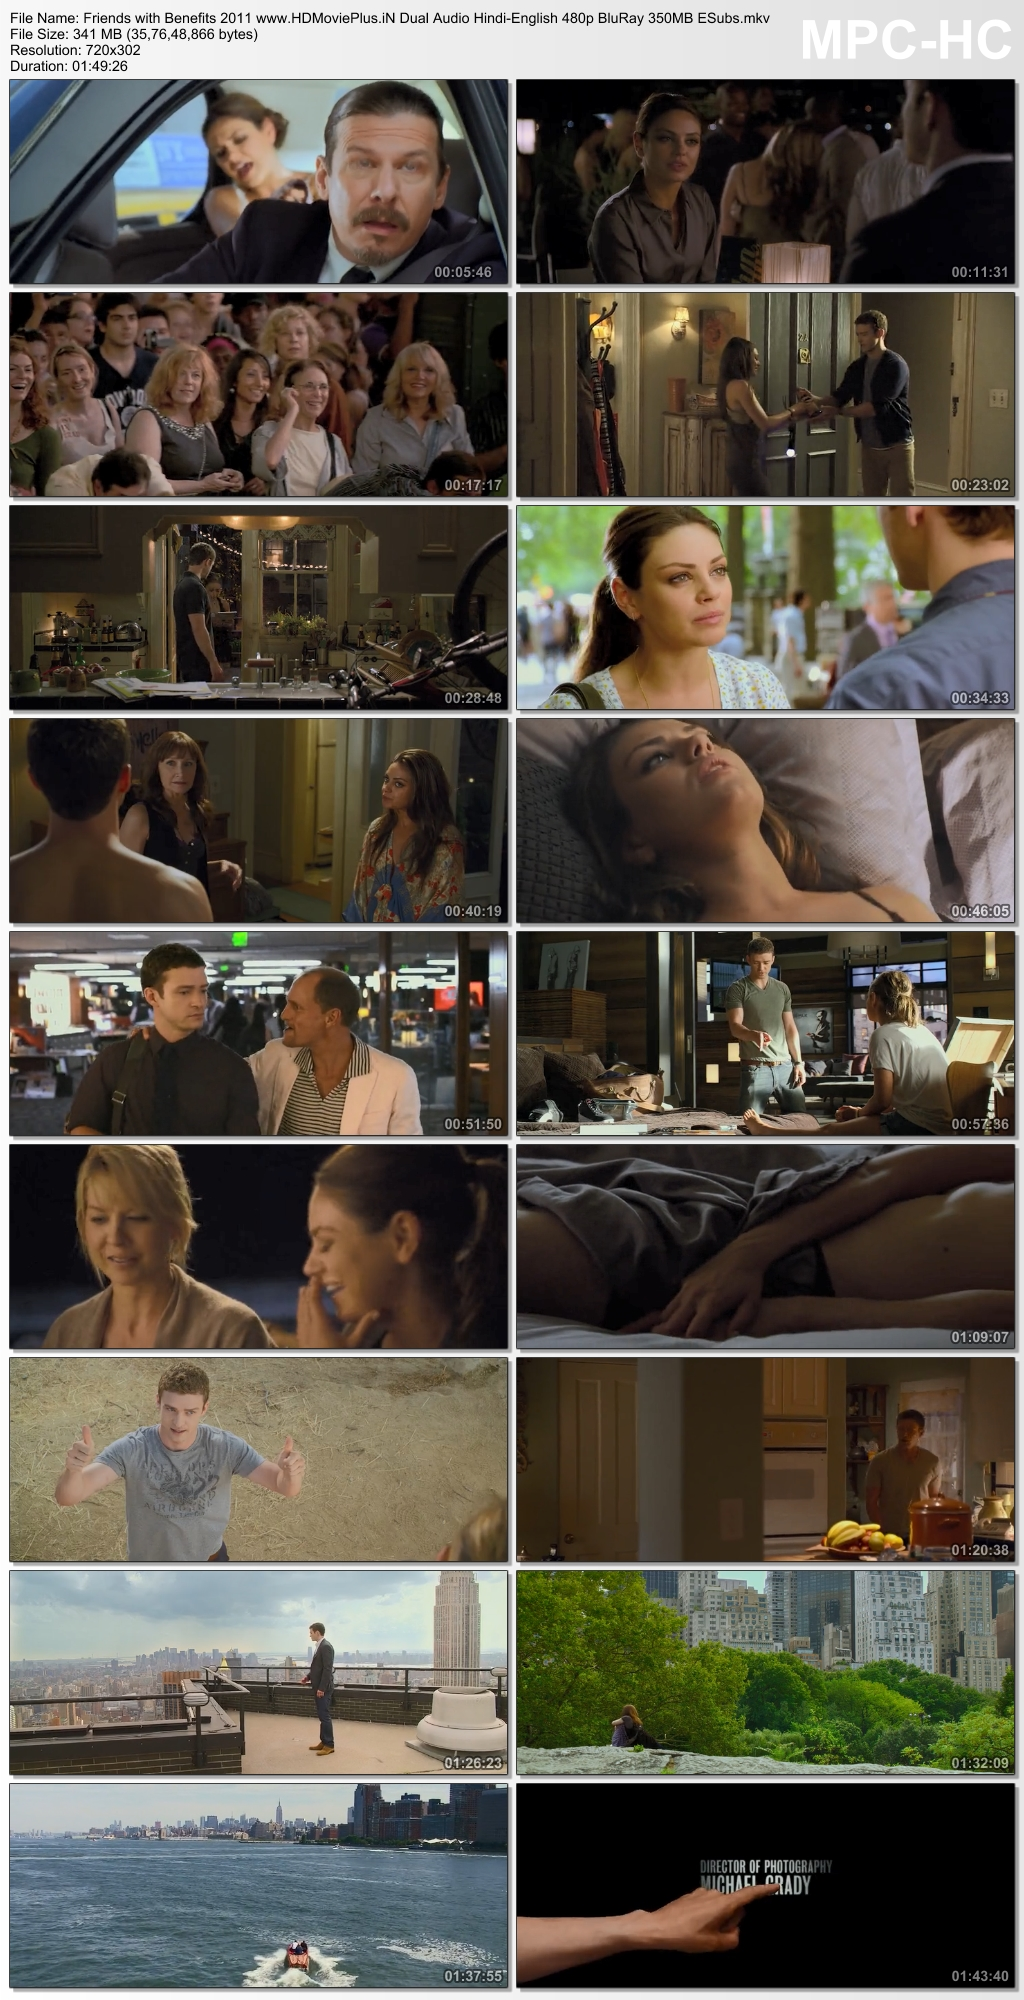 Friends with Benefits 2011 Dual Audio